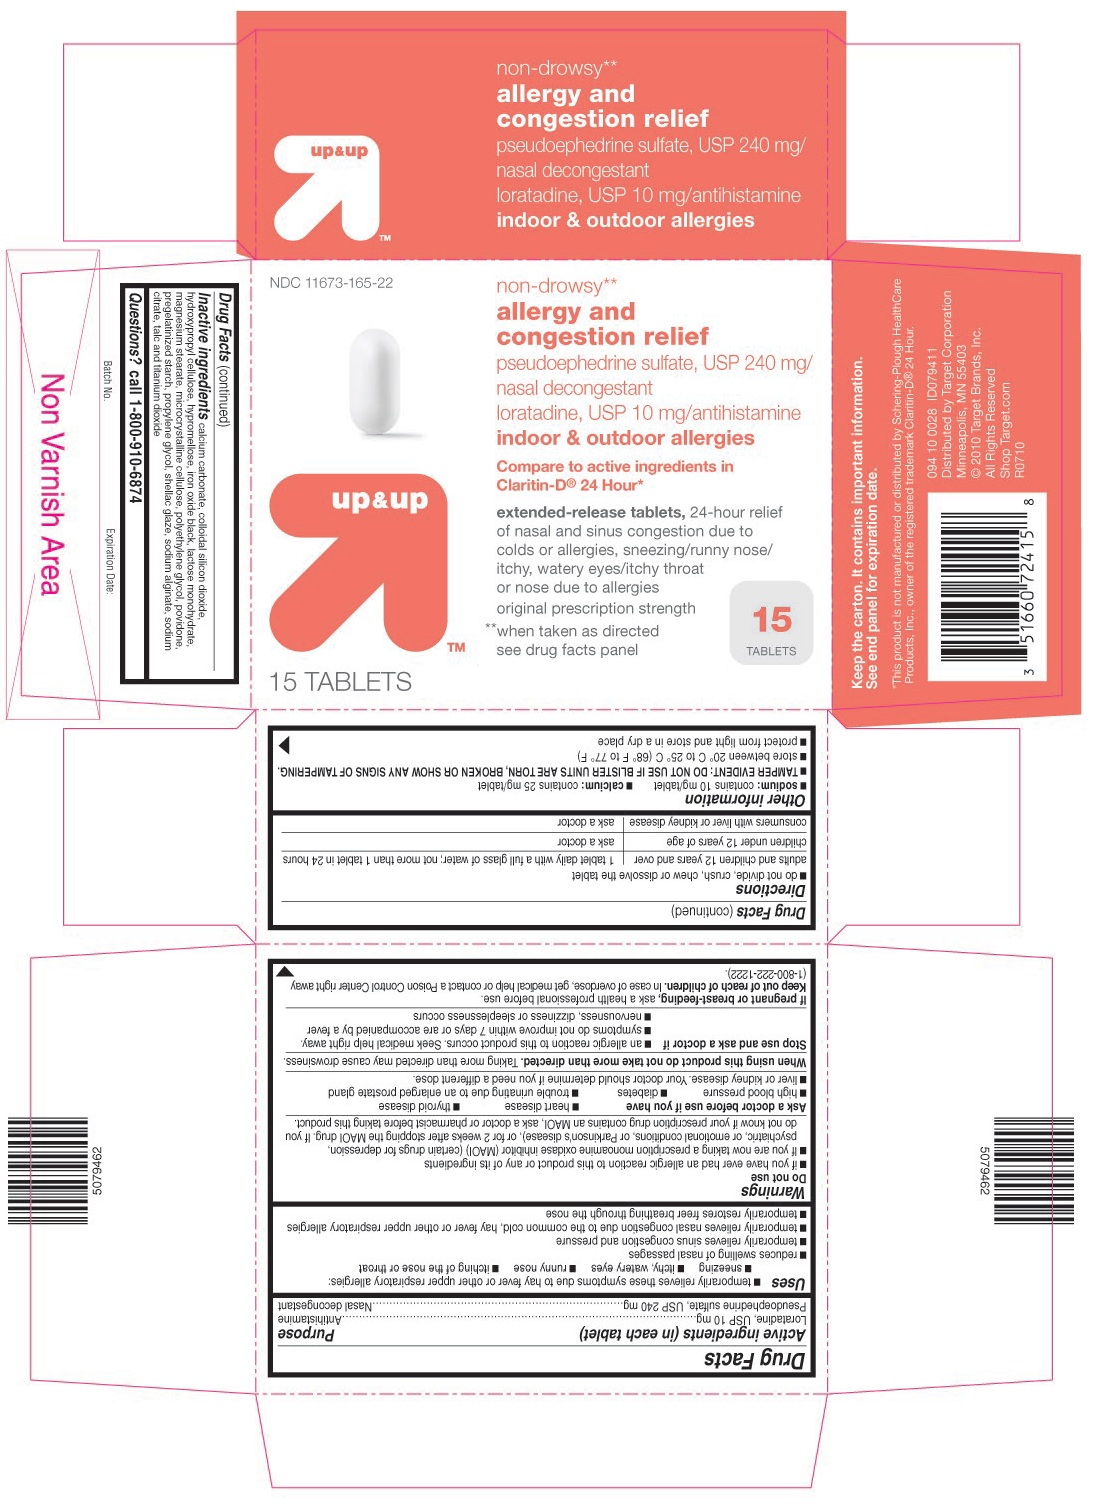 This is the 15 count blister carton label for Target Loratadine D tablets.